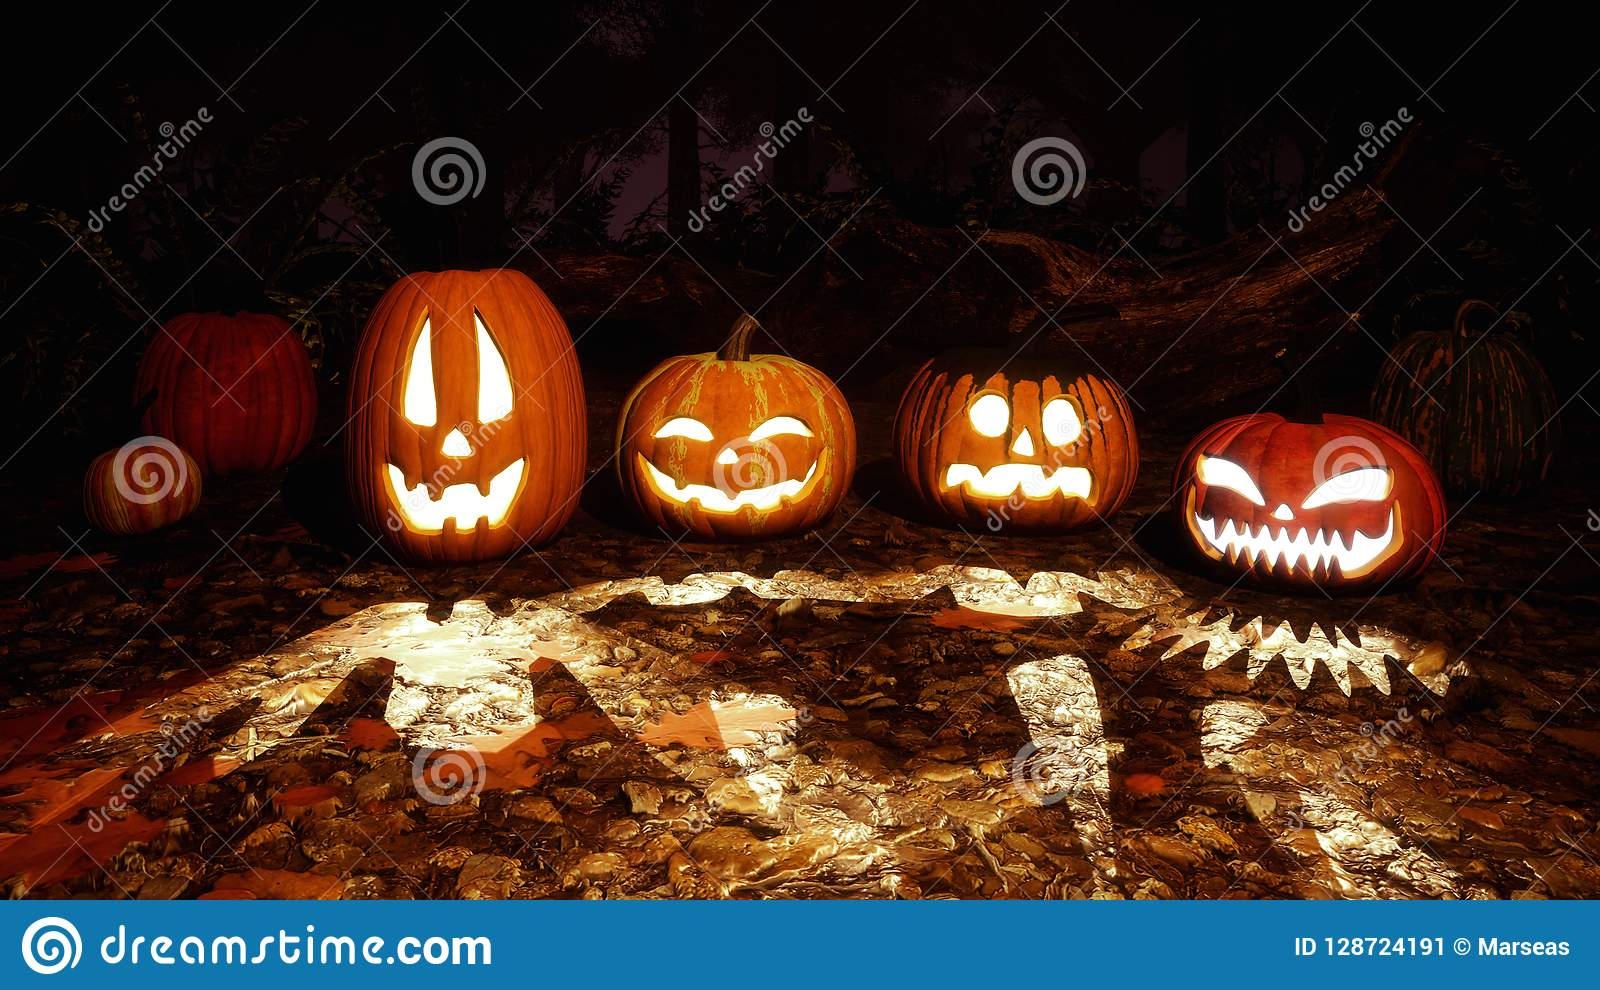 Carved halloween pumpkins in night autumn forest